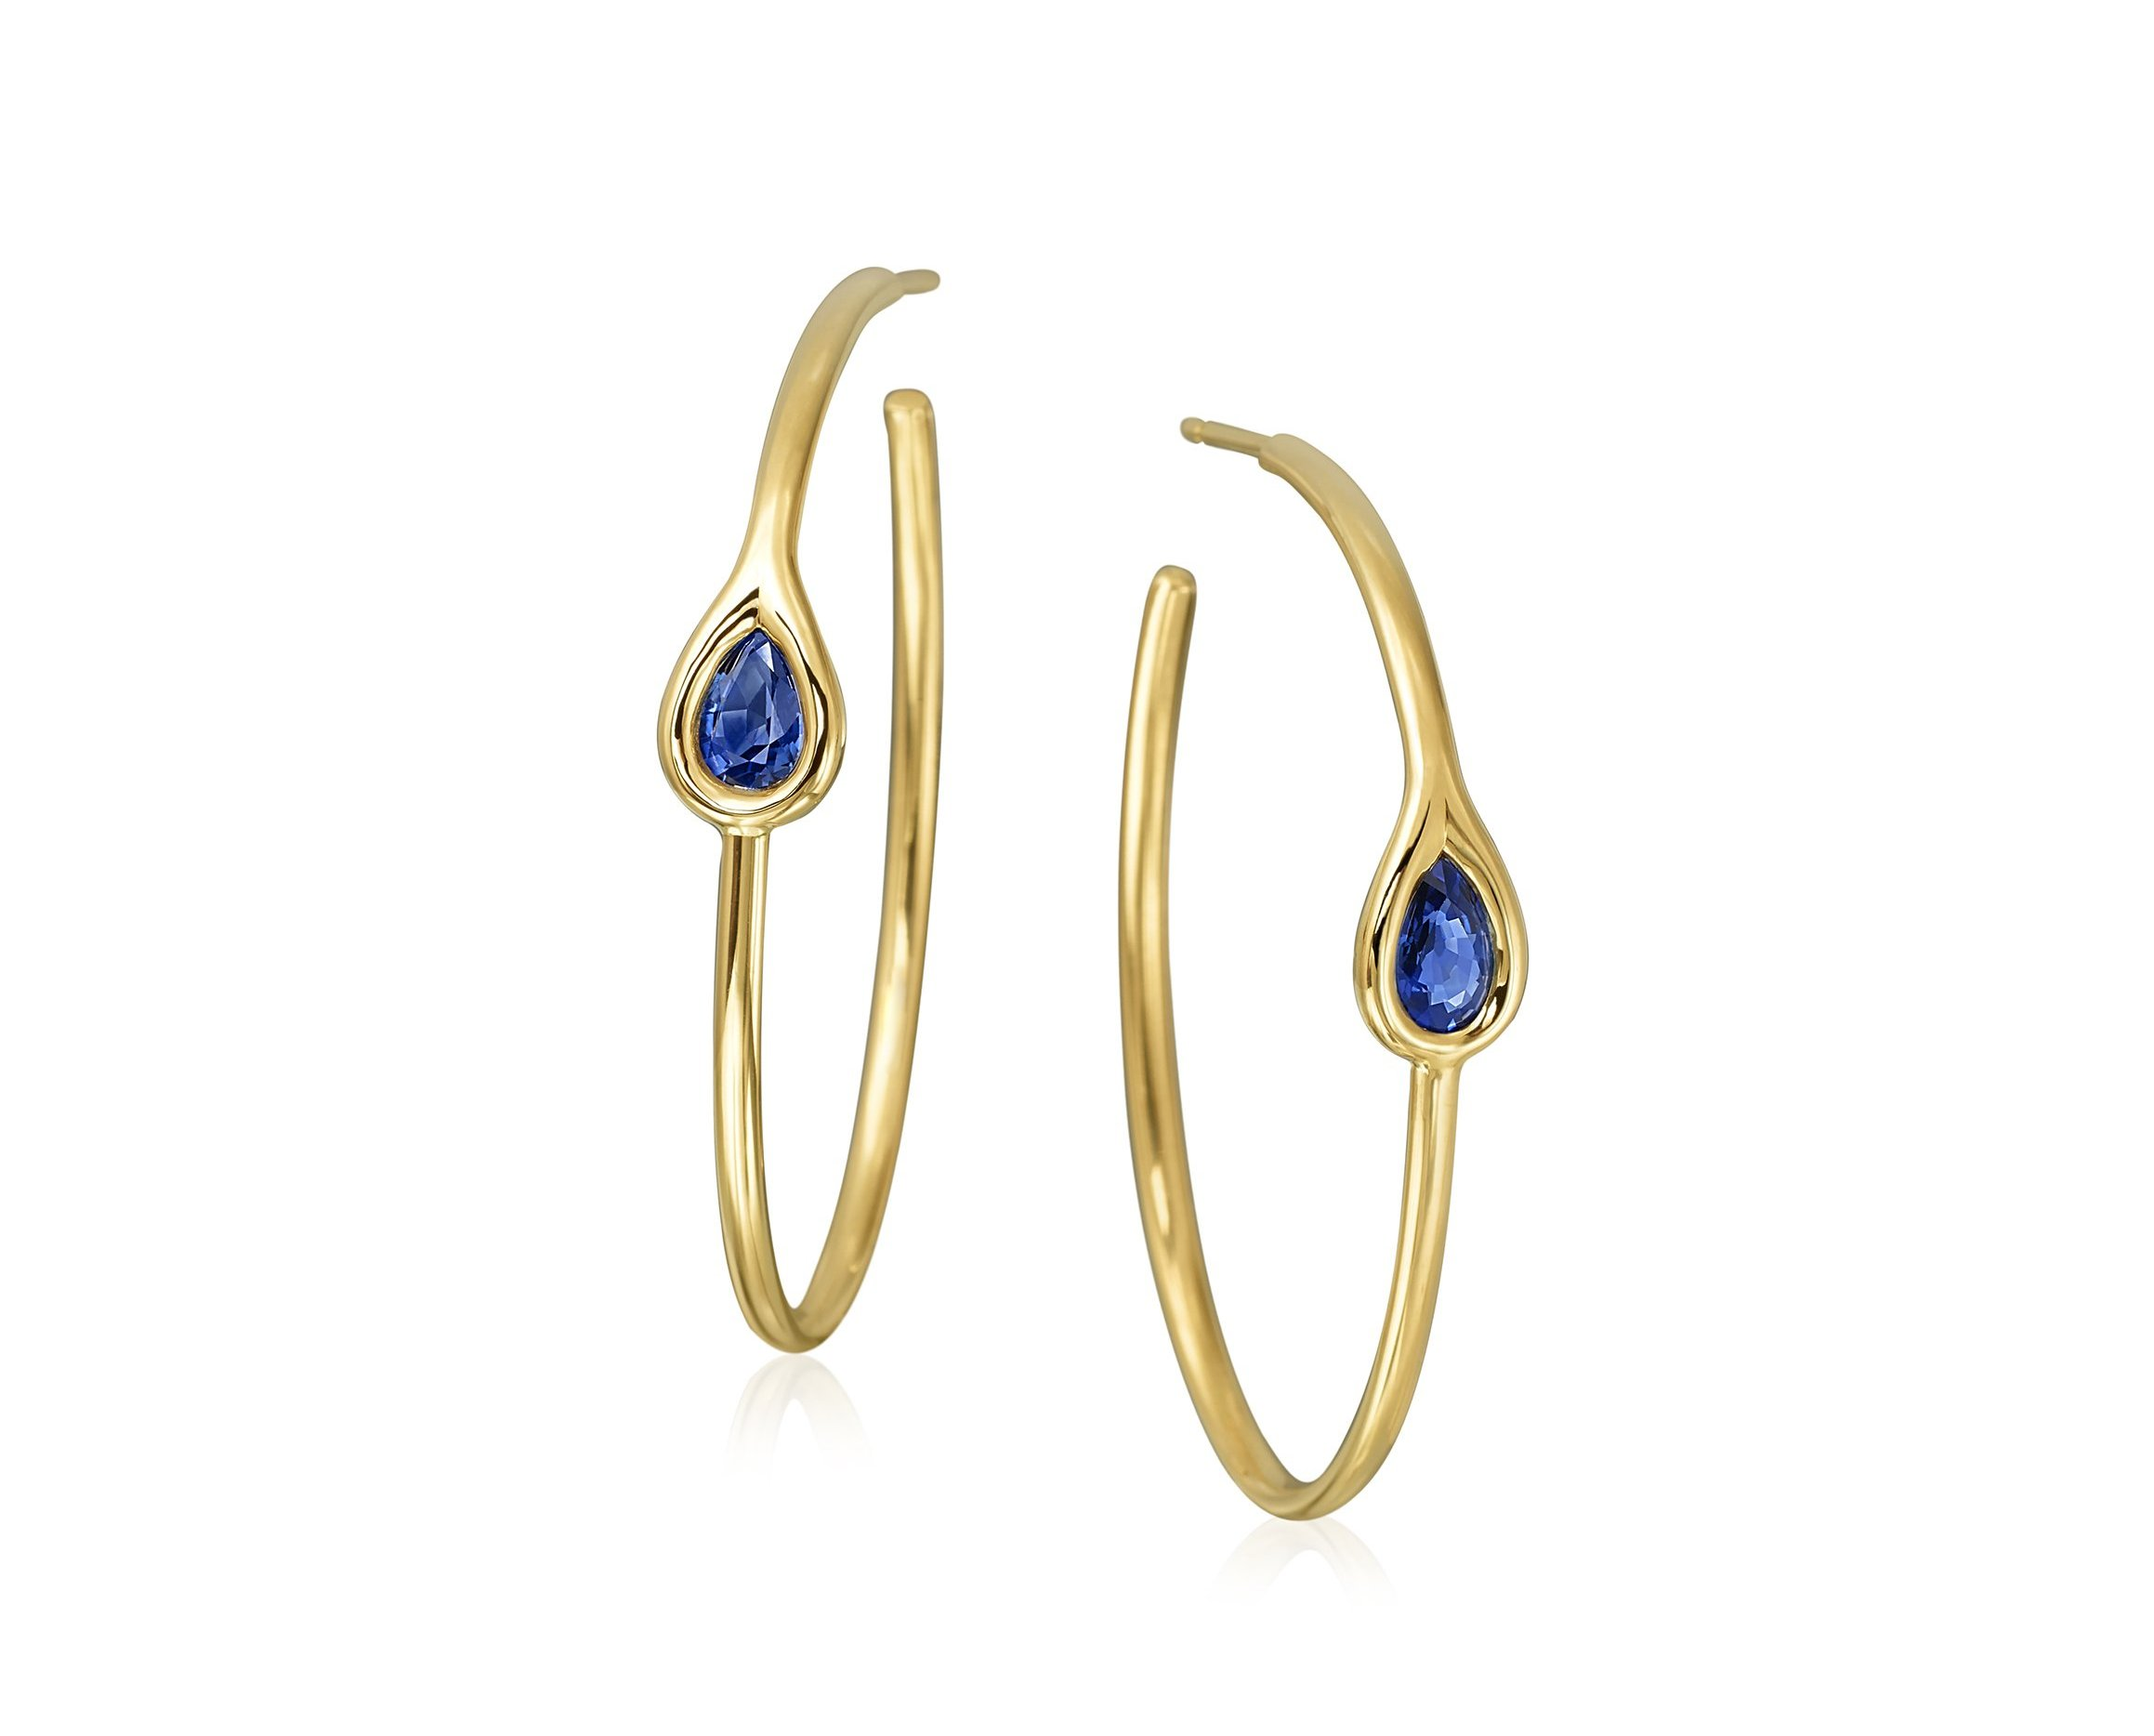 Maria Canale Drop Collection sapphire earrings in 18k yellow gold.